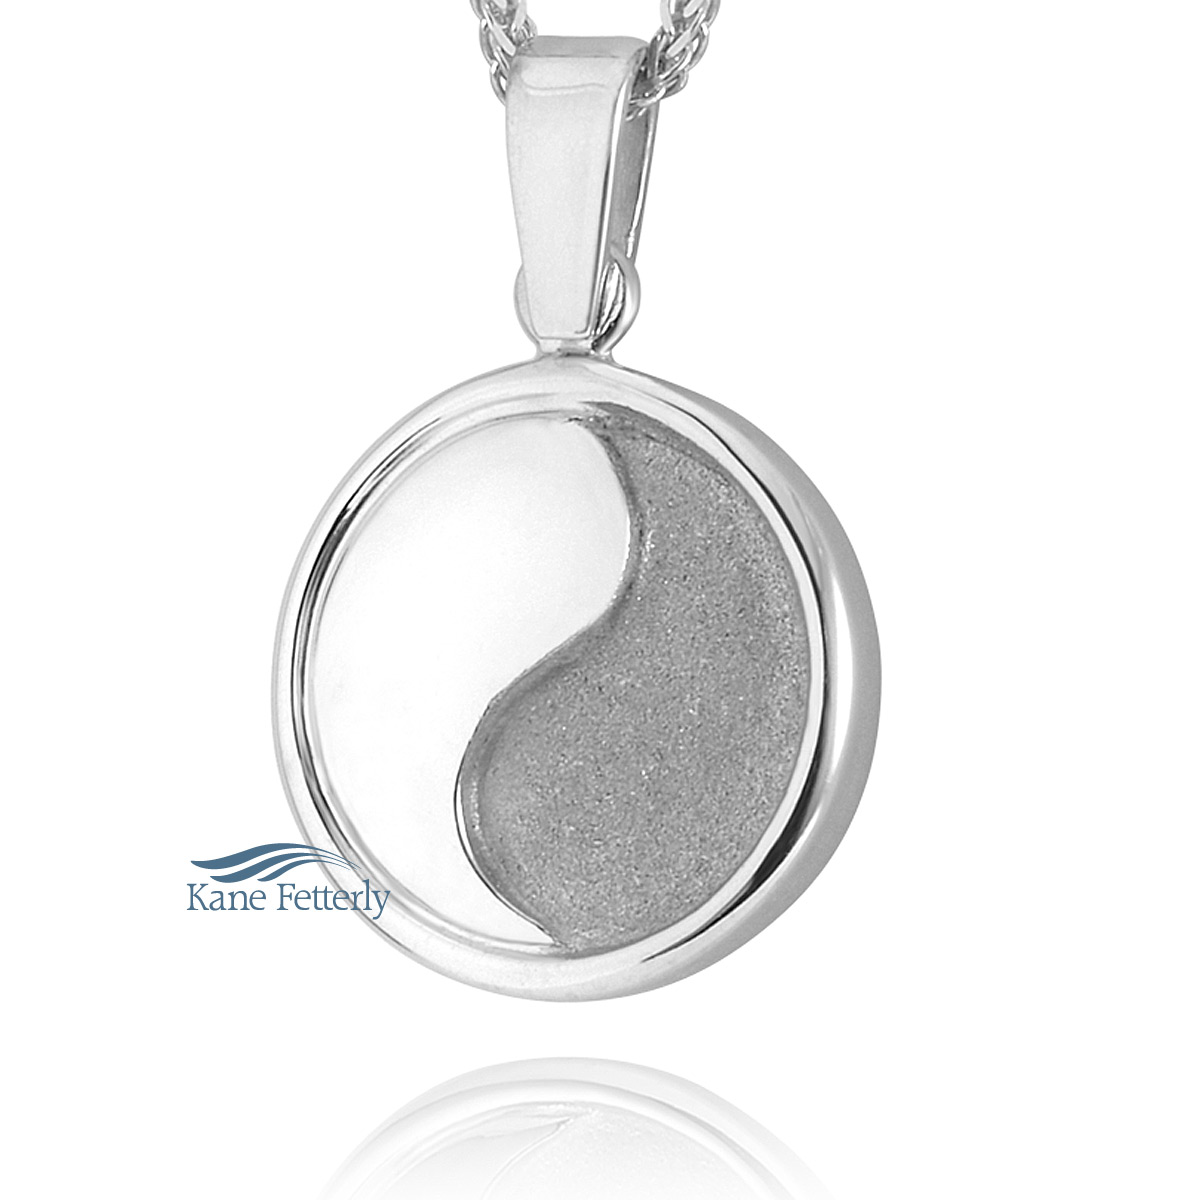 J0184 Round pendant in sterling silver